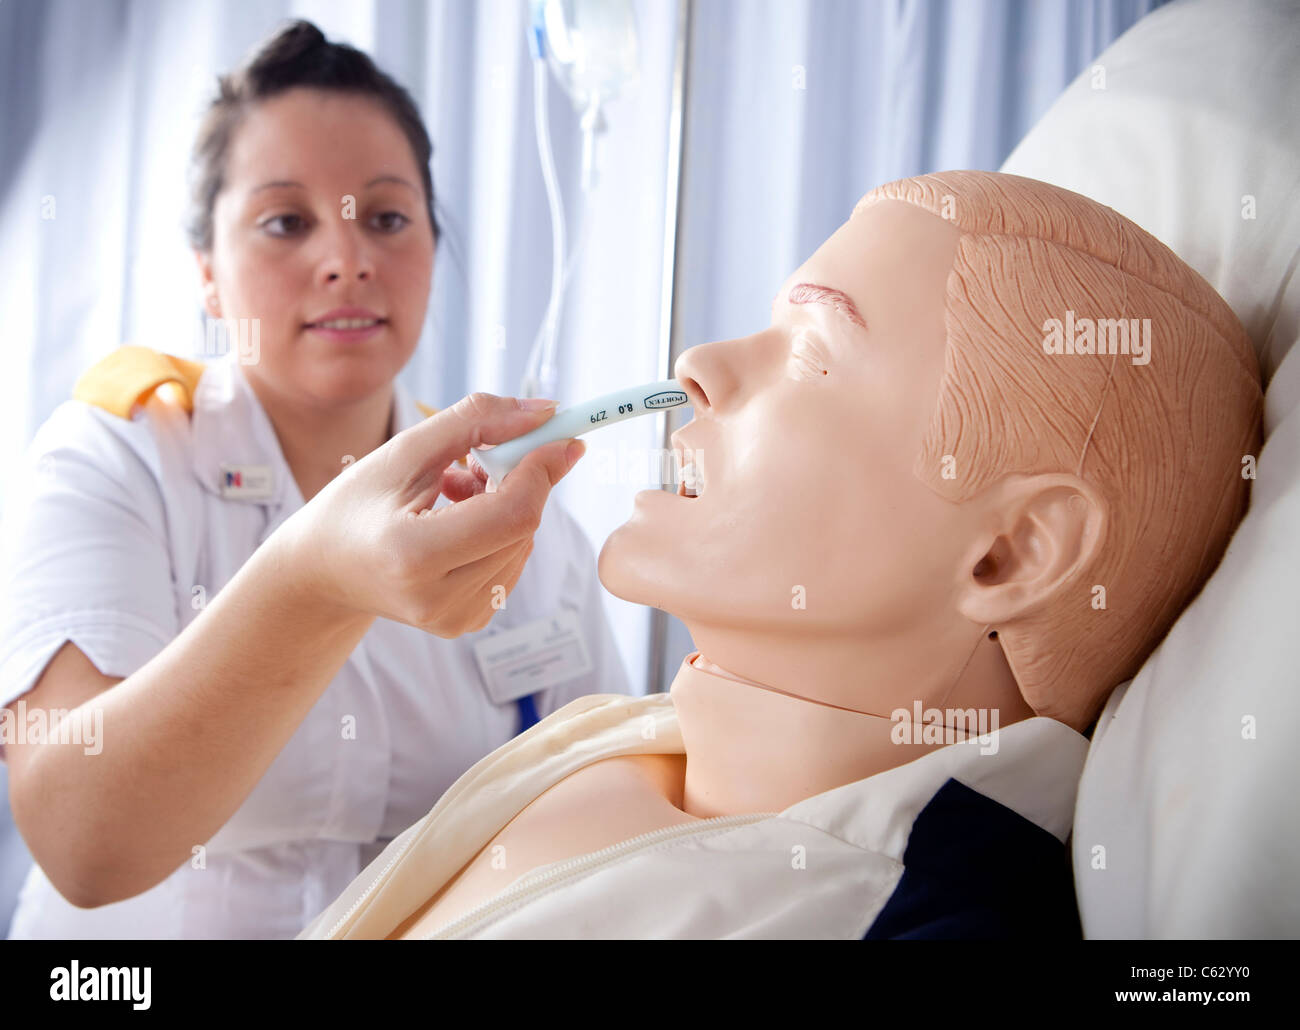 A trainee nurse using a lifelike mannequin during her hospital training. - Stock Image